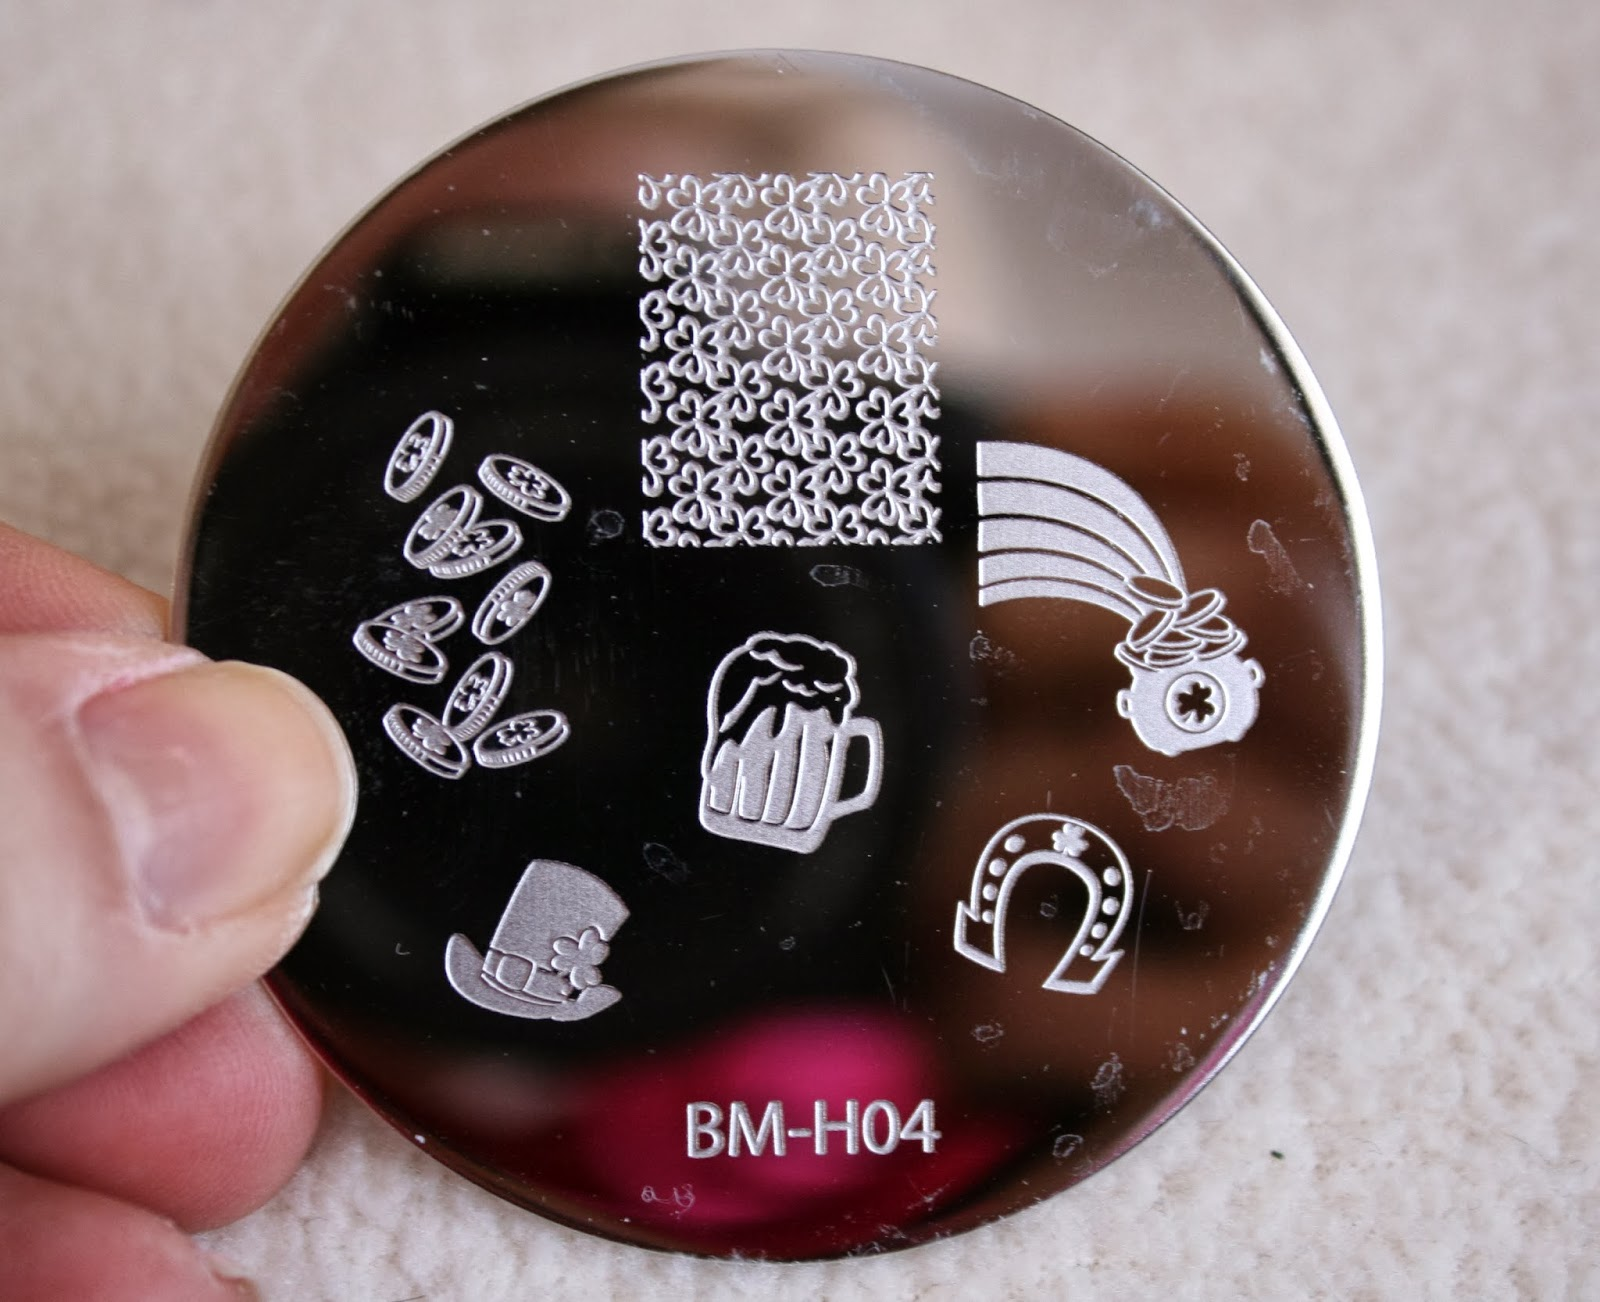 bundle monster nail stamping plates set collection holiday 2013 nails art stamp konad bm-h04